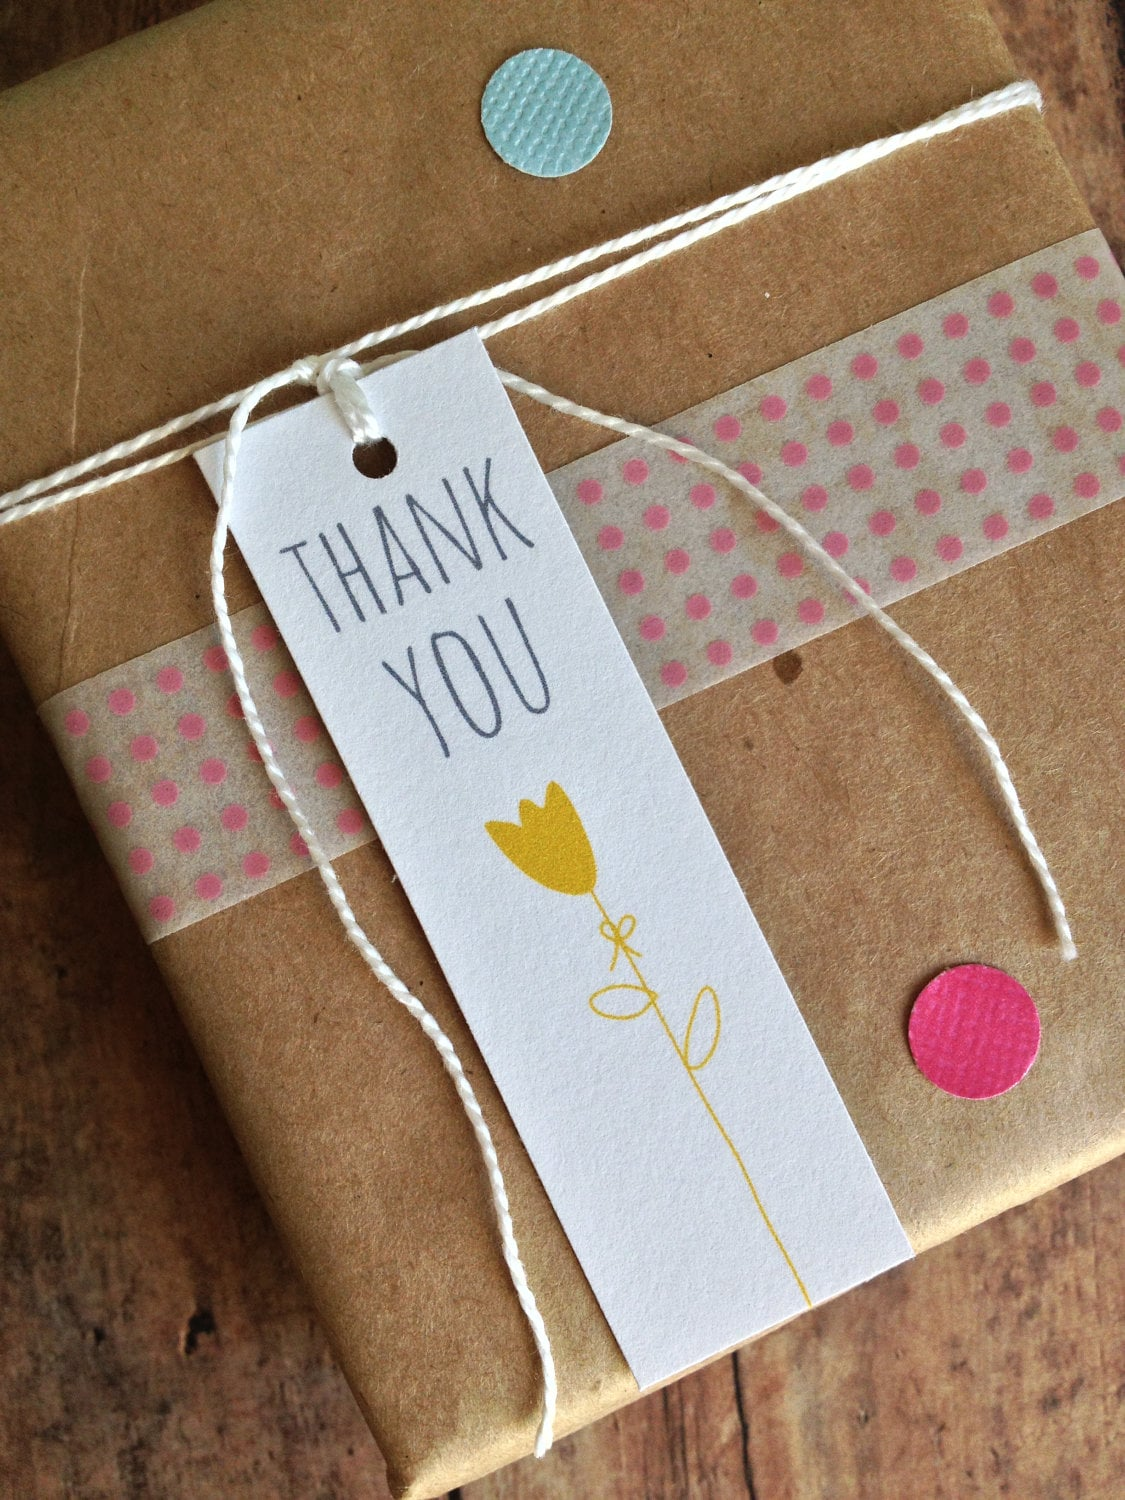 Thank you tag - gift tag - party favor tag - tulip flower tag- packaging supplies - bridal shower favor tags